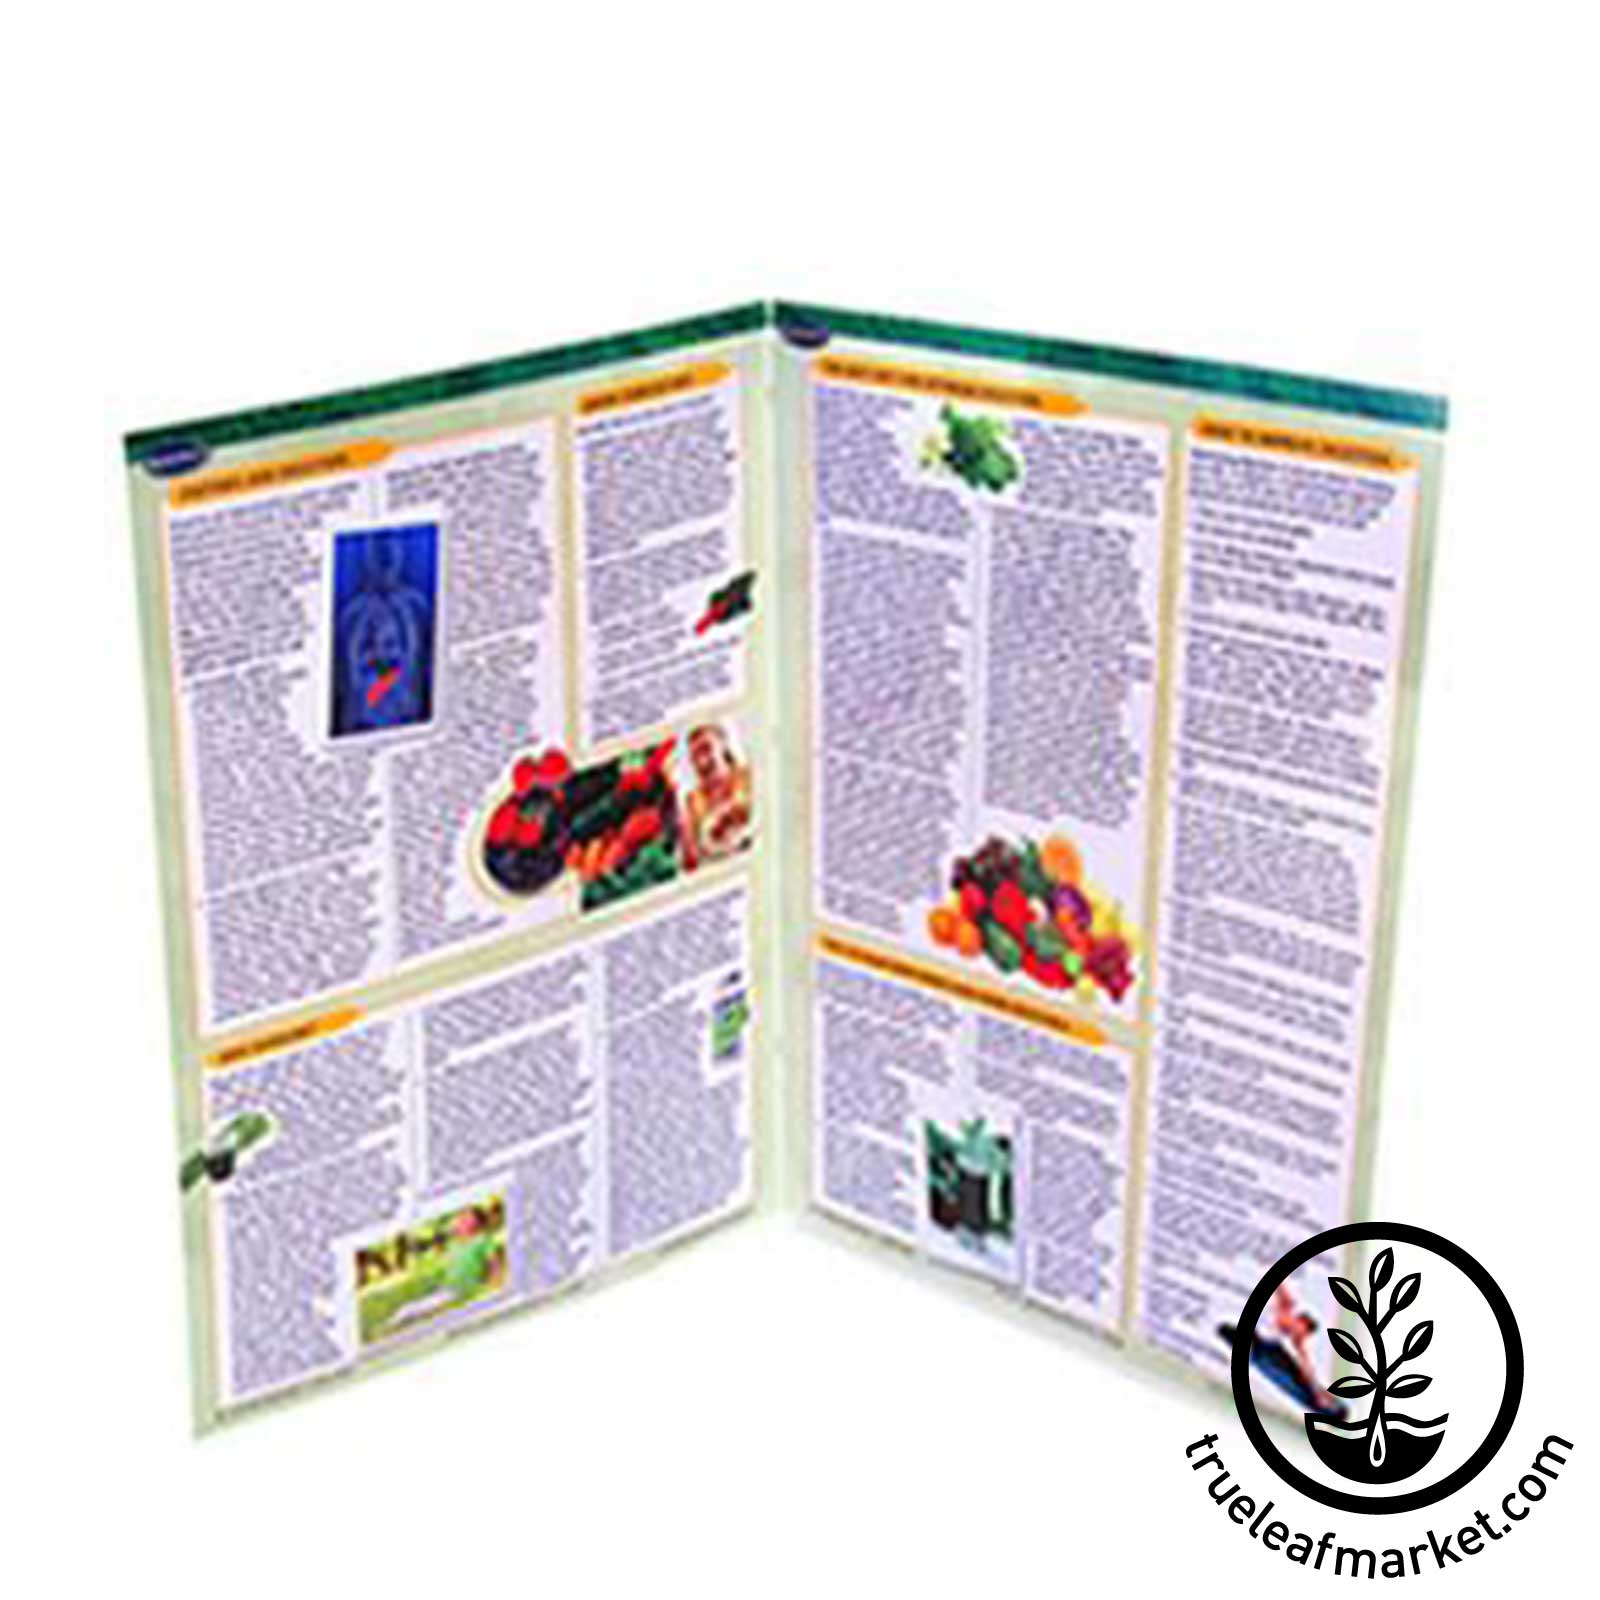 Permachart Raw Food Reference: Interior View